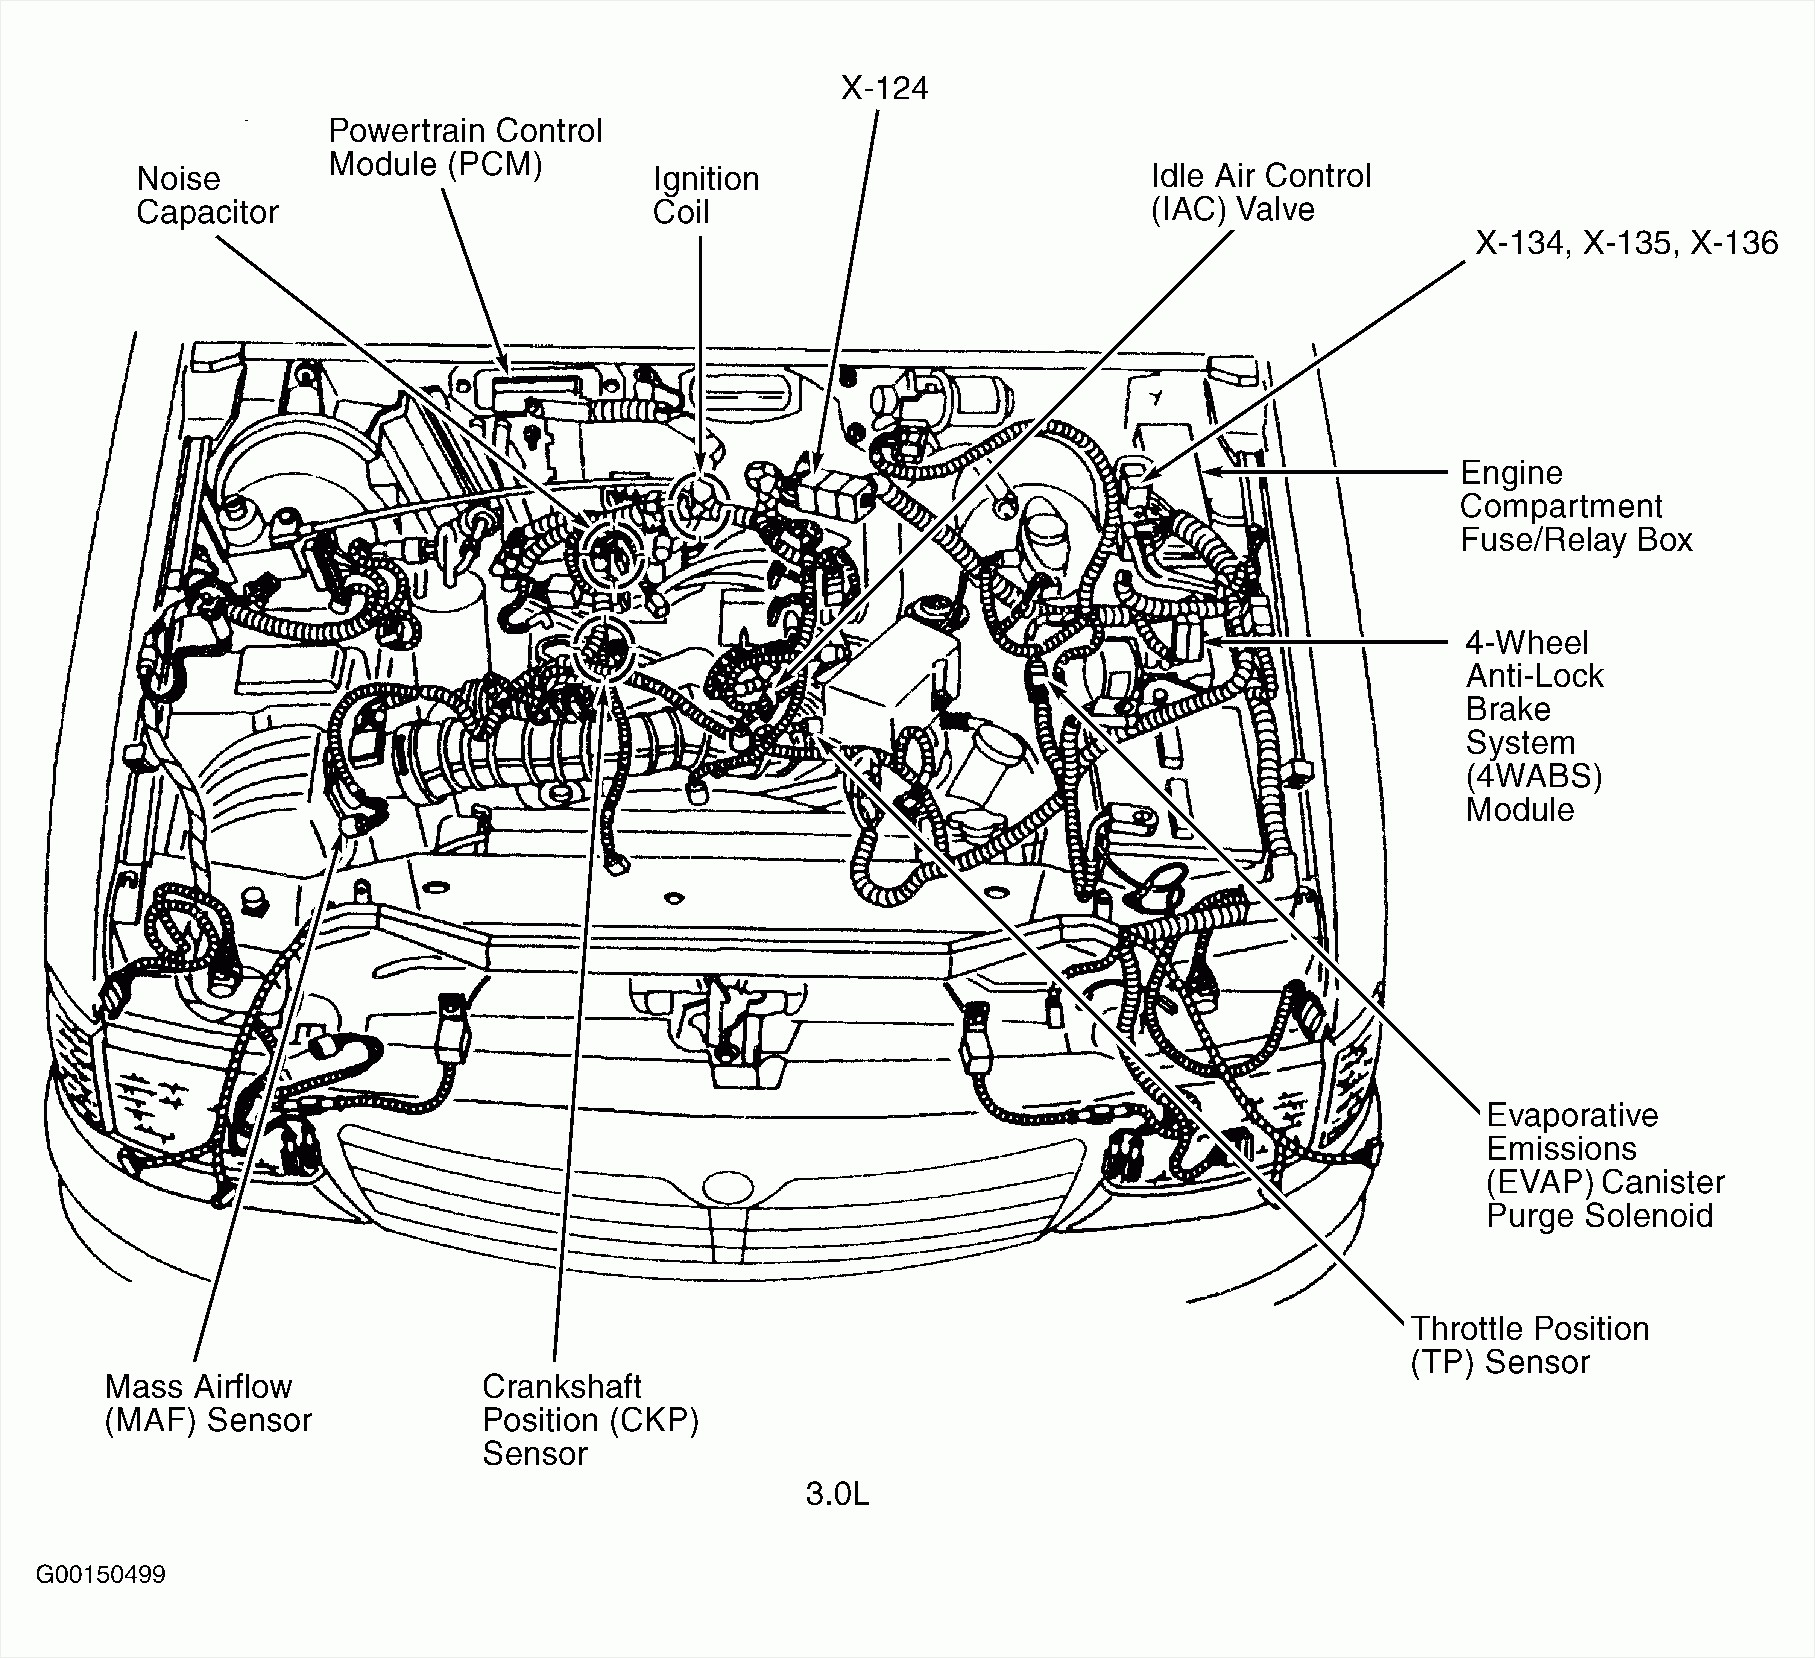 2011 ford Escape Engine Diagram 2004 Mazda 6 V6 Engine Diagram Wiring Diagrams Of 2011 ford Escape Engine Diagram